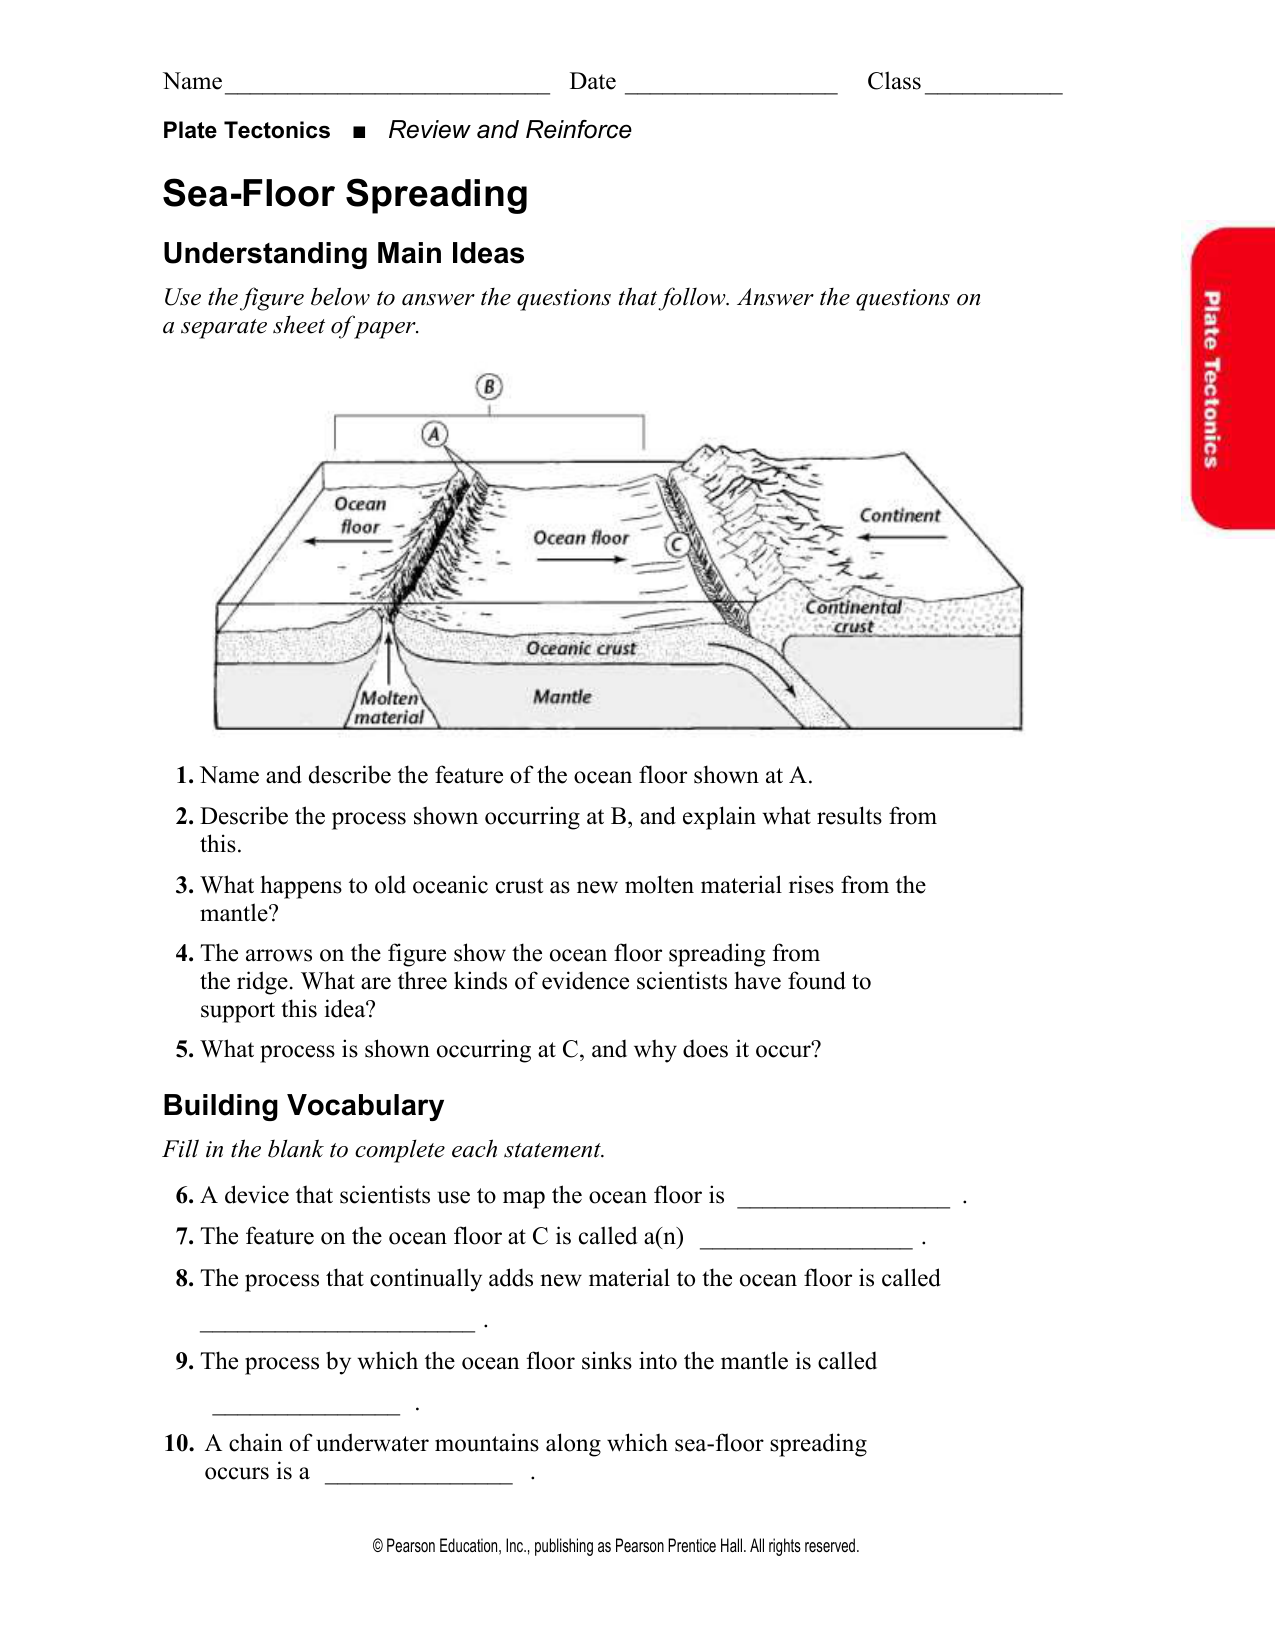 Sea Floor Spreading Worksheet Answers Pearson Education